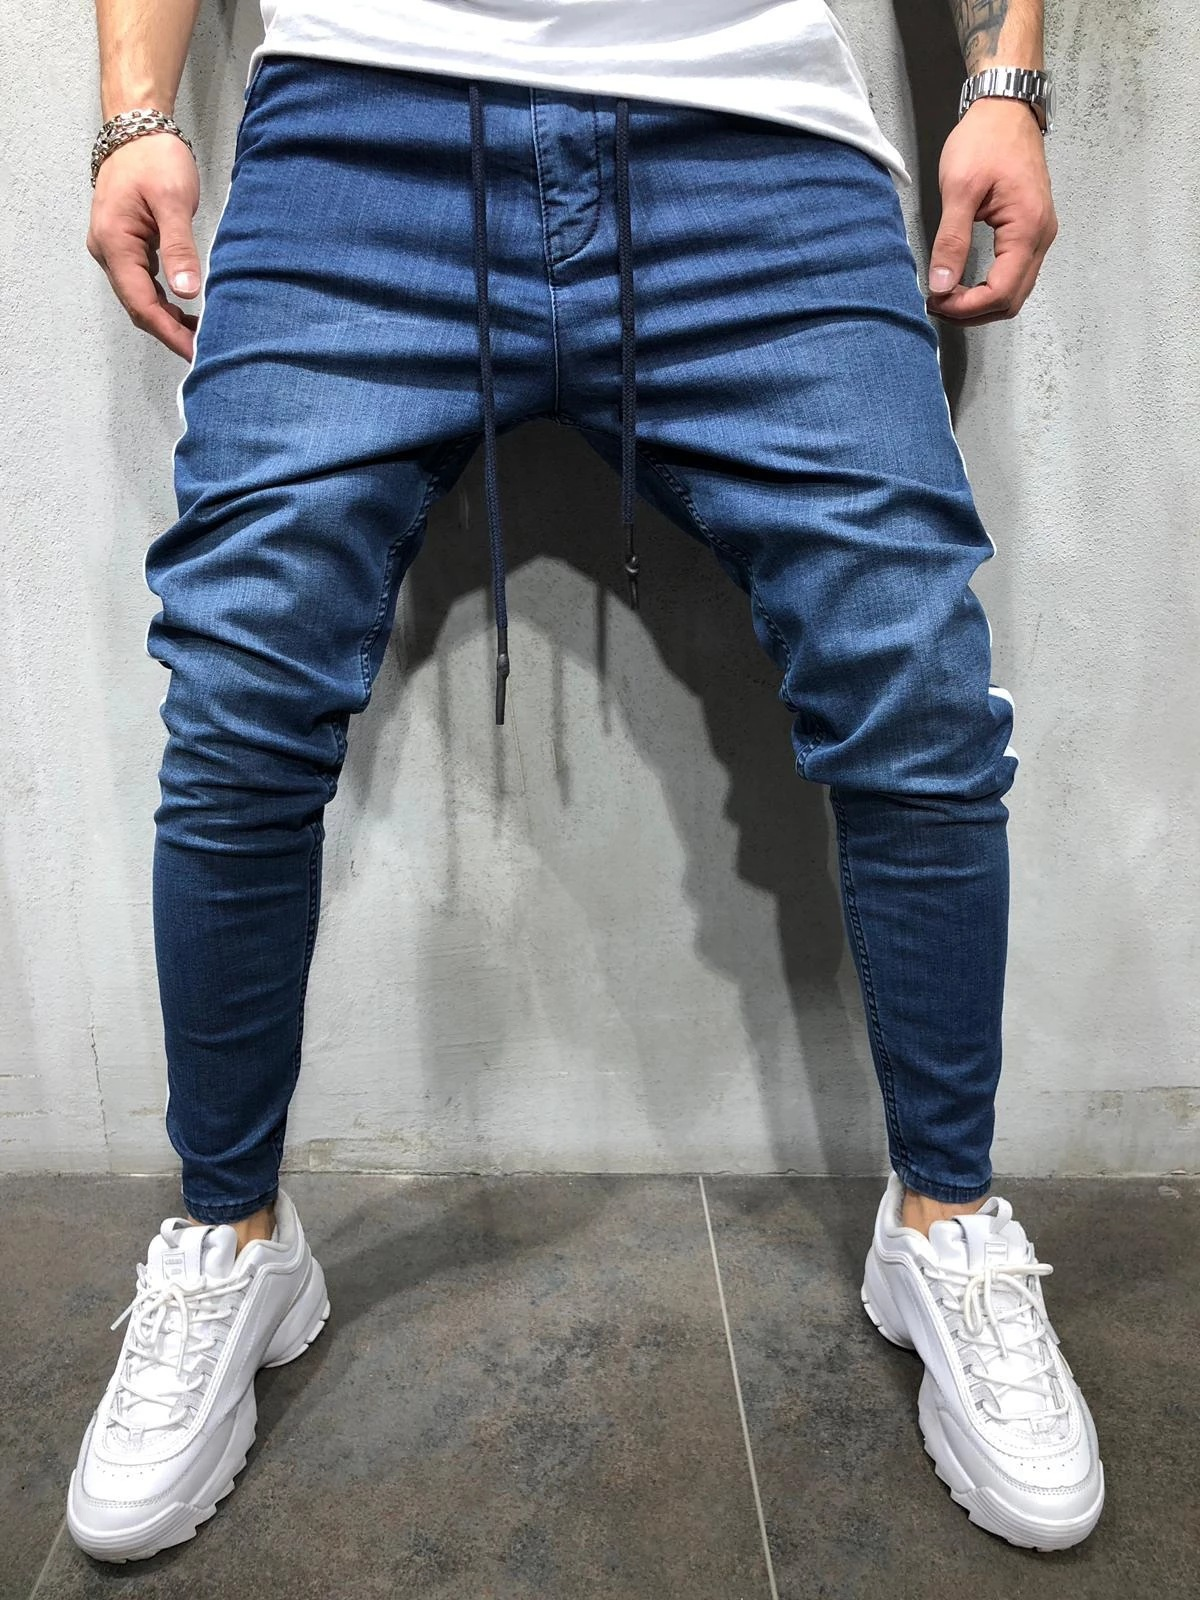 2019 New Men's Fashion Casual Denim Fabric Personality Side Stitching Jeans Male Streetwear Hiphop Personality Denim Pants